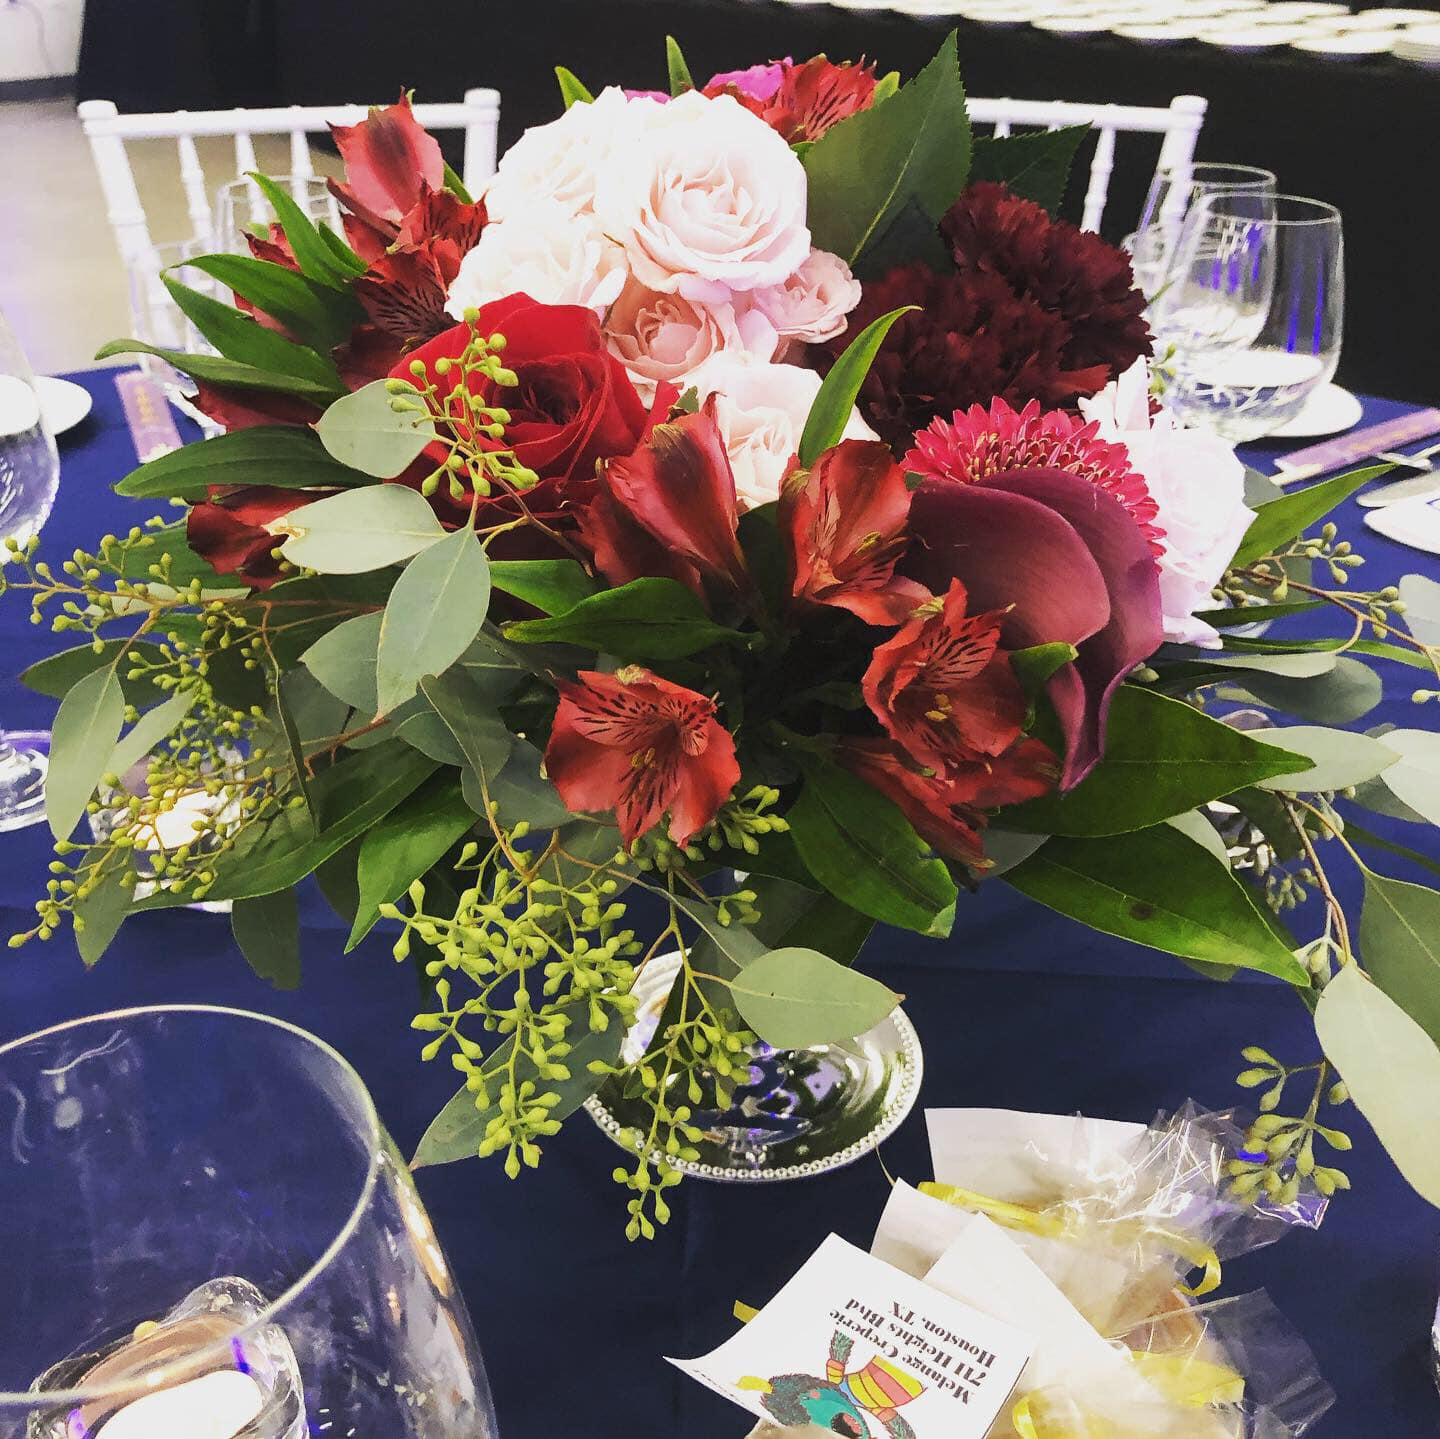 Floral centerpieces by Stephanie Coulter of Lily In June